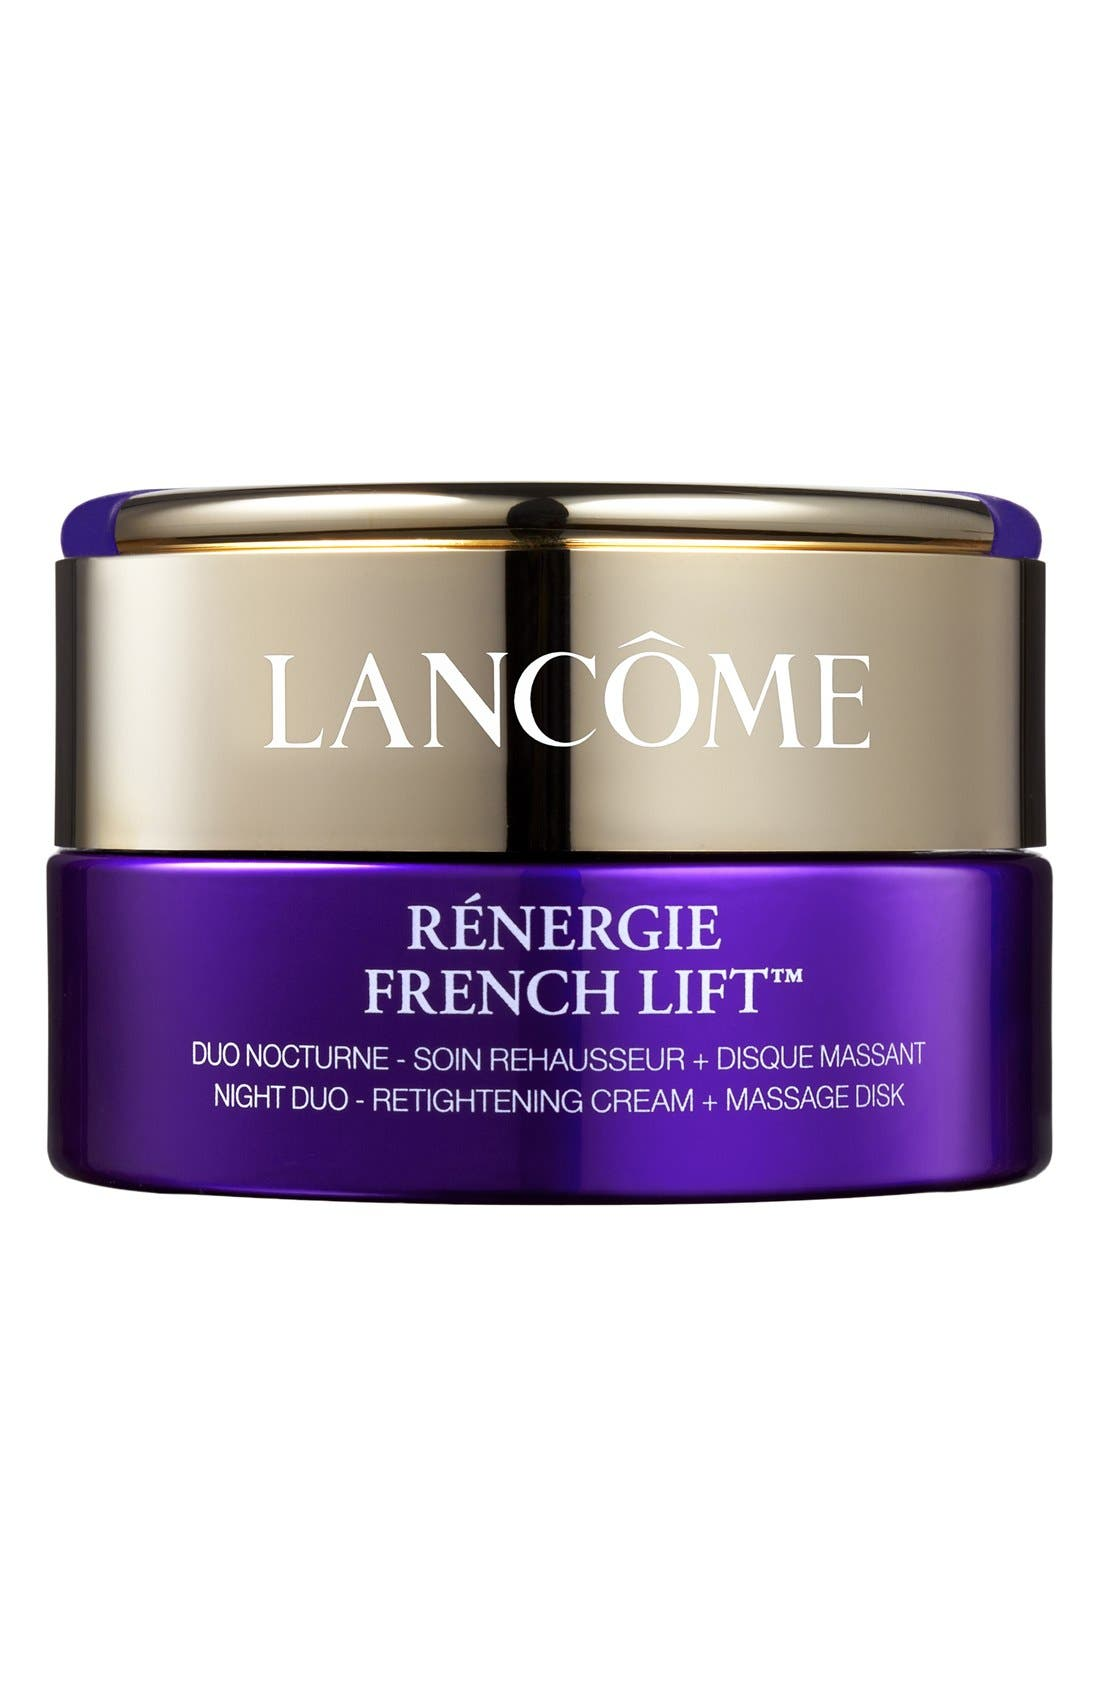 Lancôme Rénergie Lift Multi-Action French Lift Retightening Moisturizer Cream